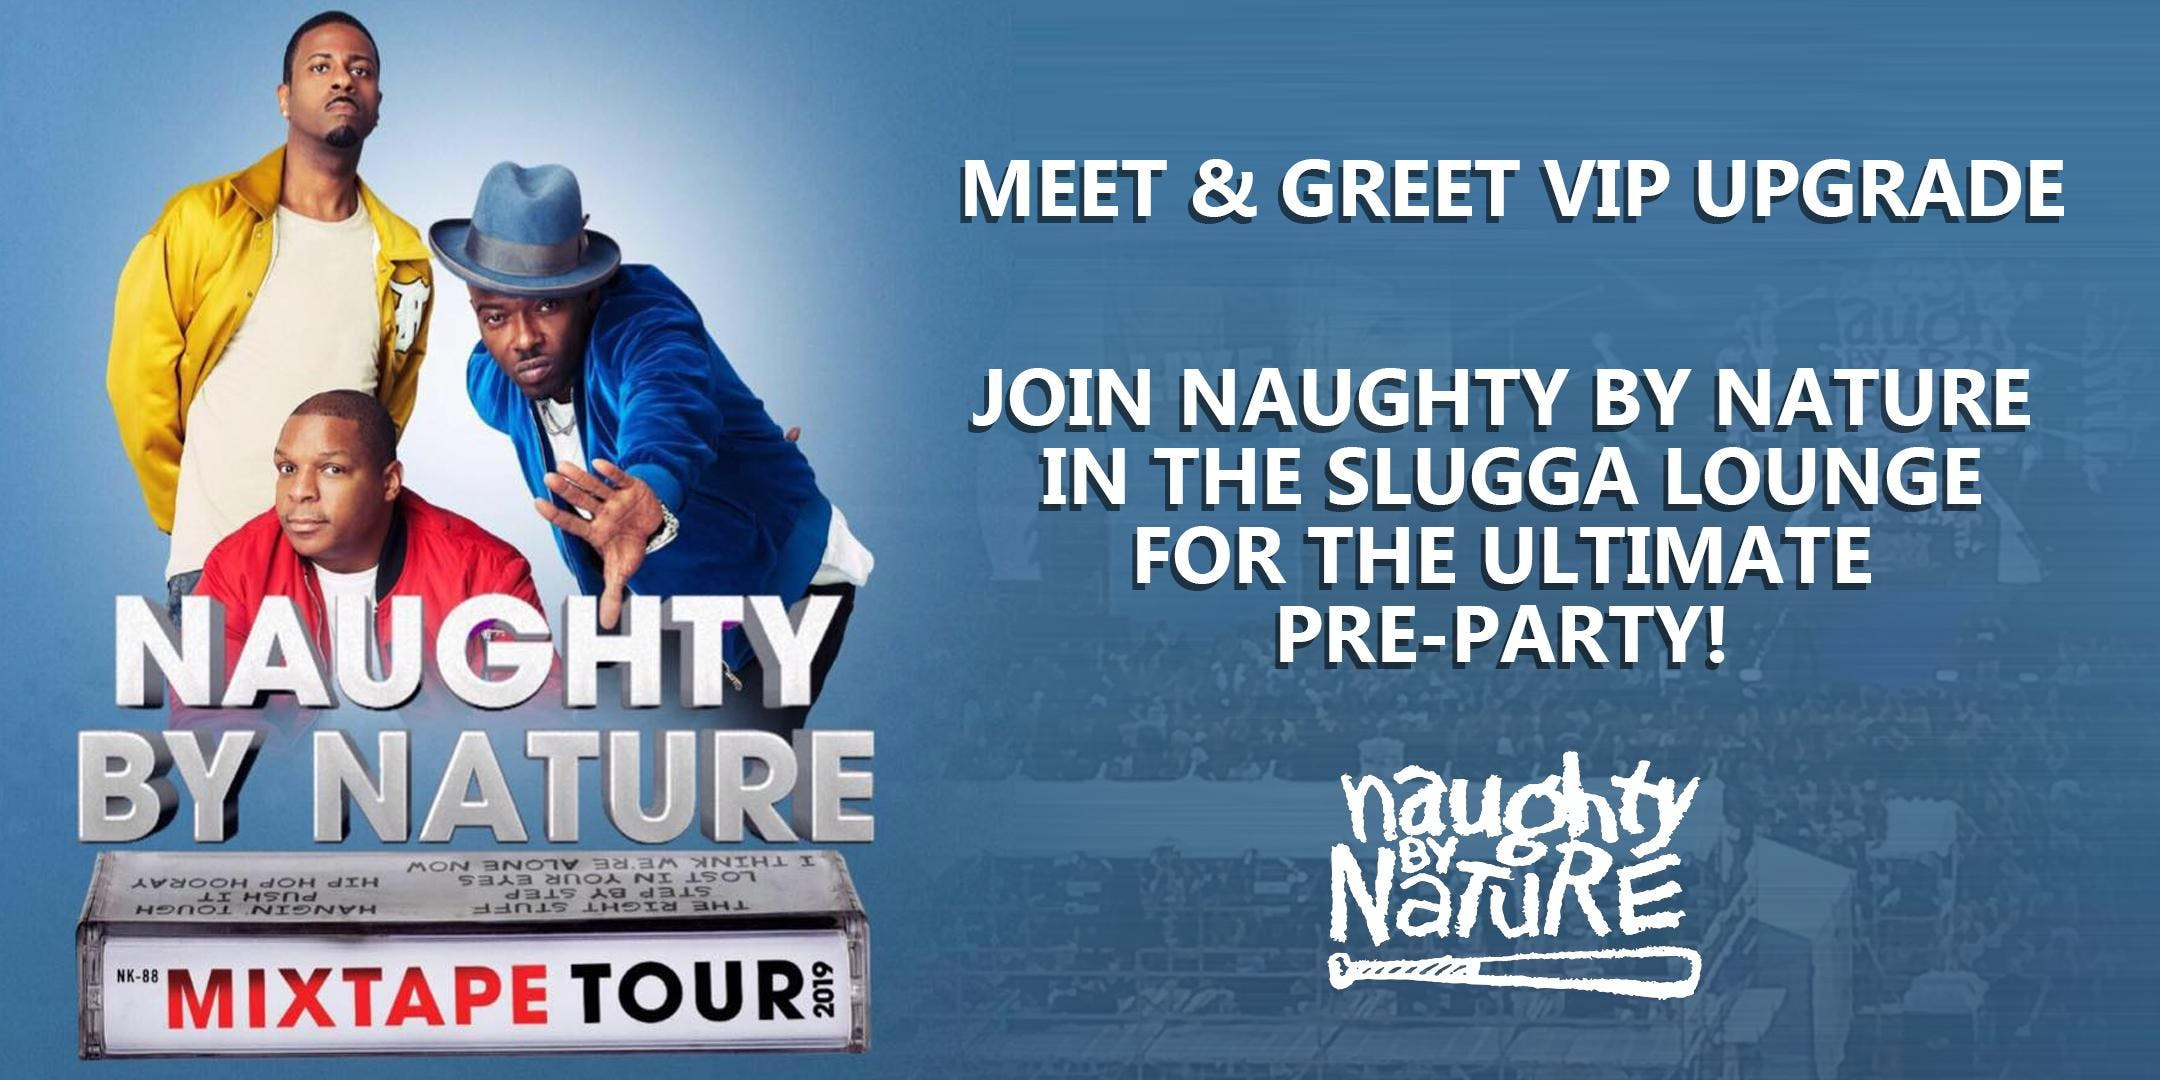 NAUGHTY BY NATURE MEET + GREET UPGRADE - Grand Rap banner